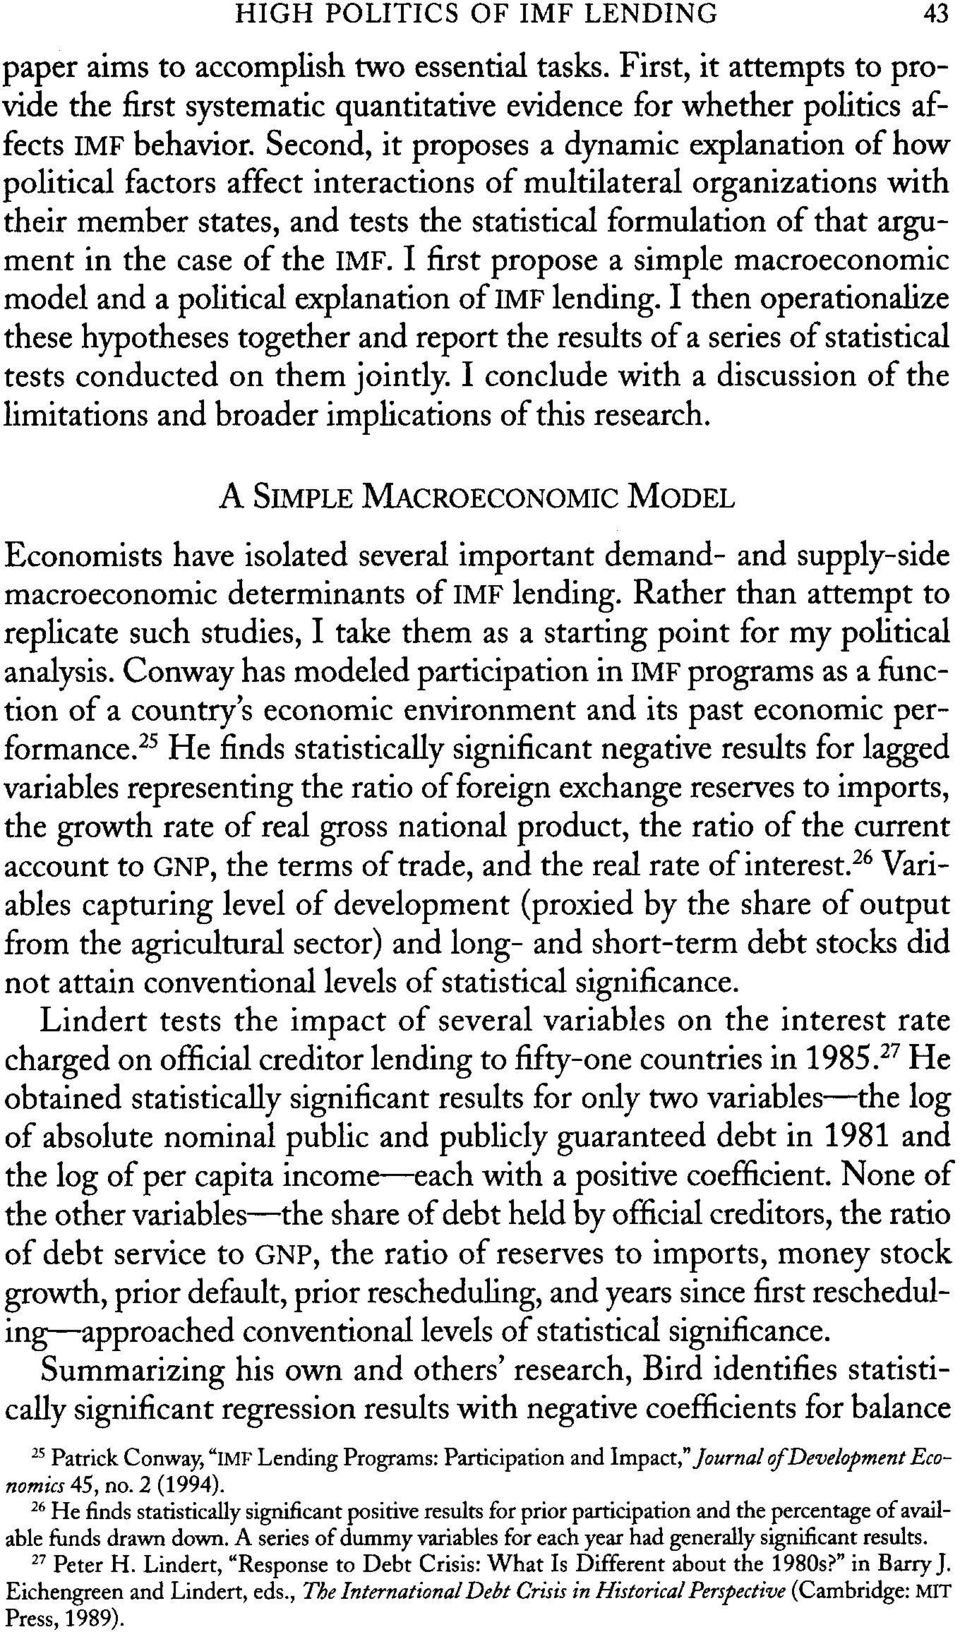 I first propose a simple macroeconomic model a explanation of IMF lending. I n operationalize se hyposes ger report results of a series of statistical tests conducted on m jointly.